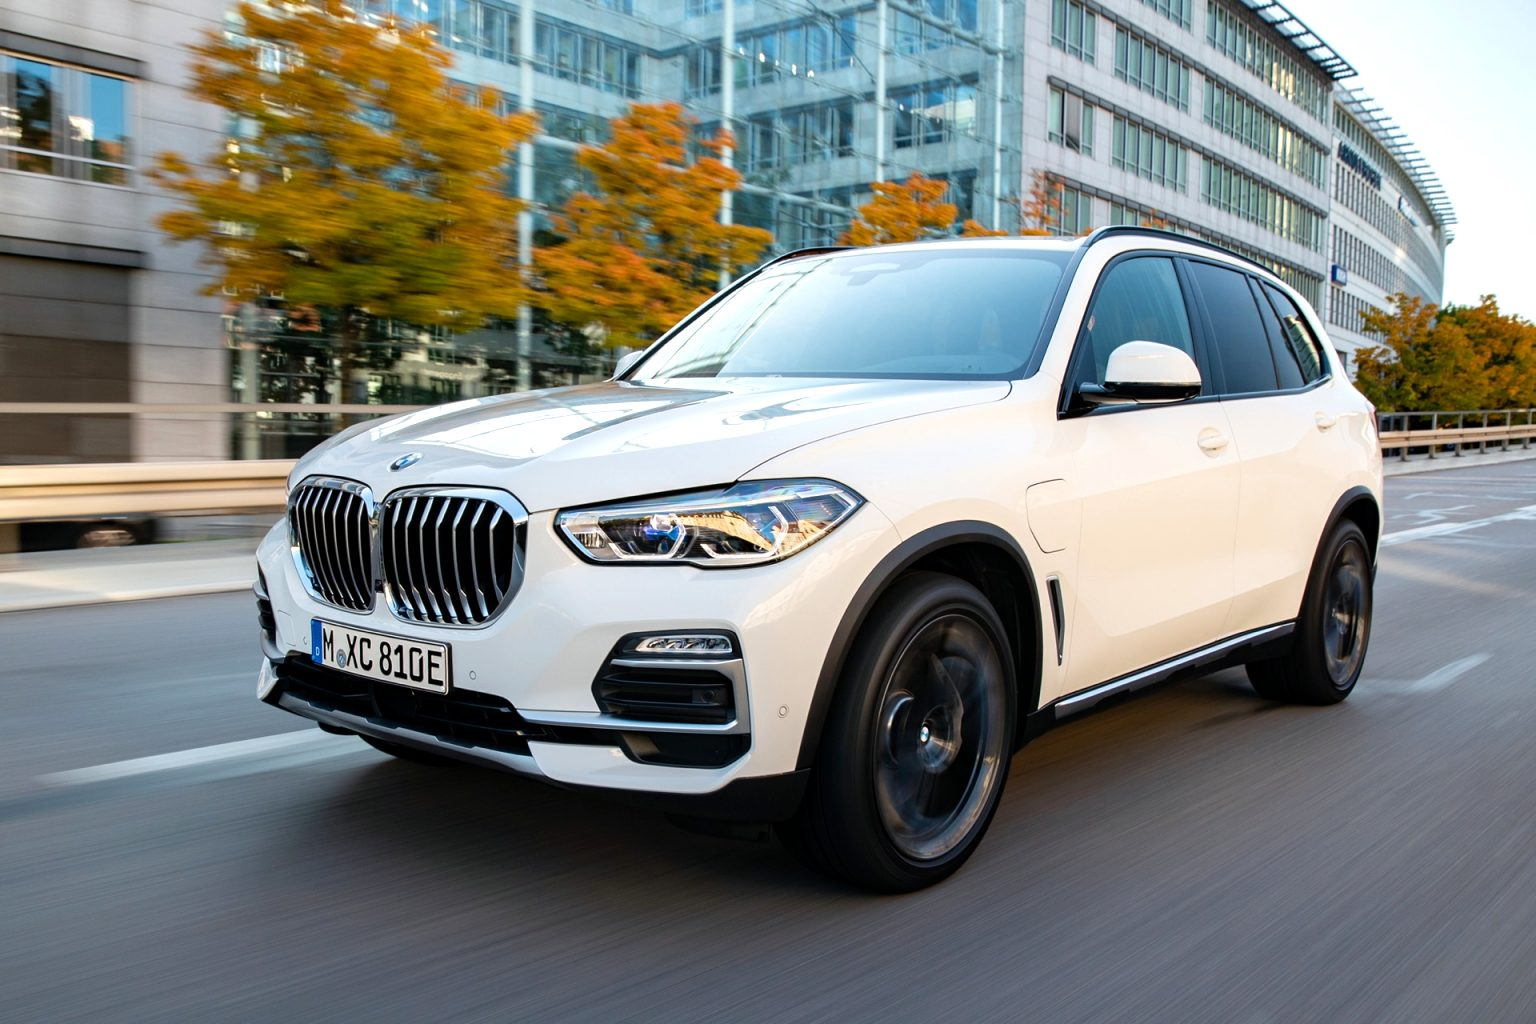 2021 BMW electric SUV Prices